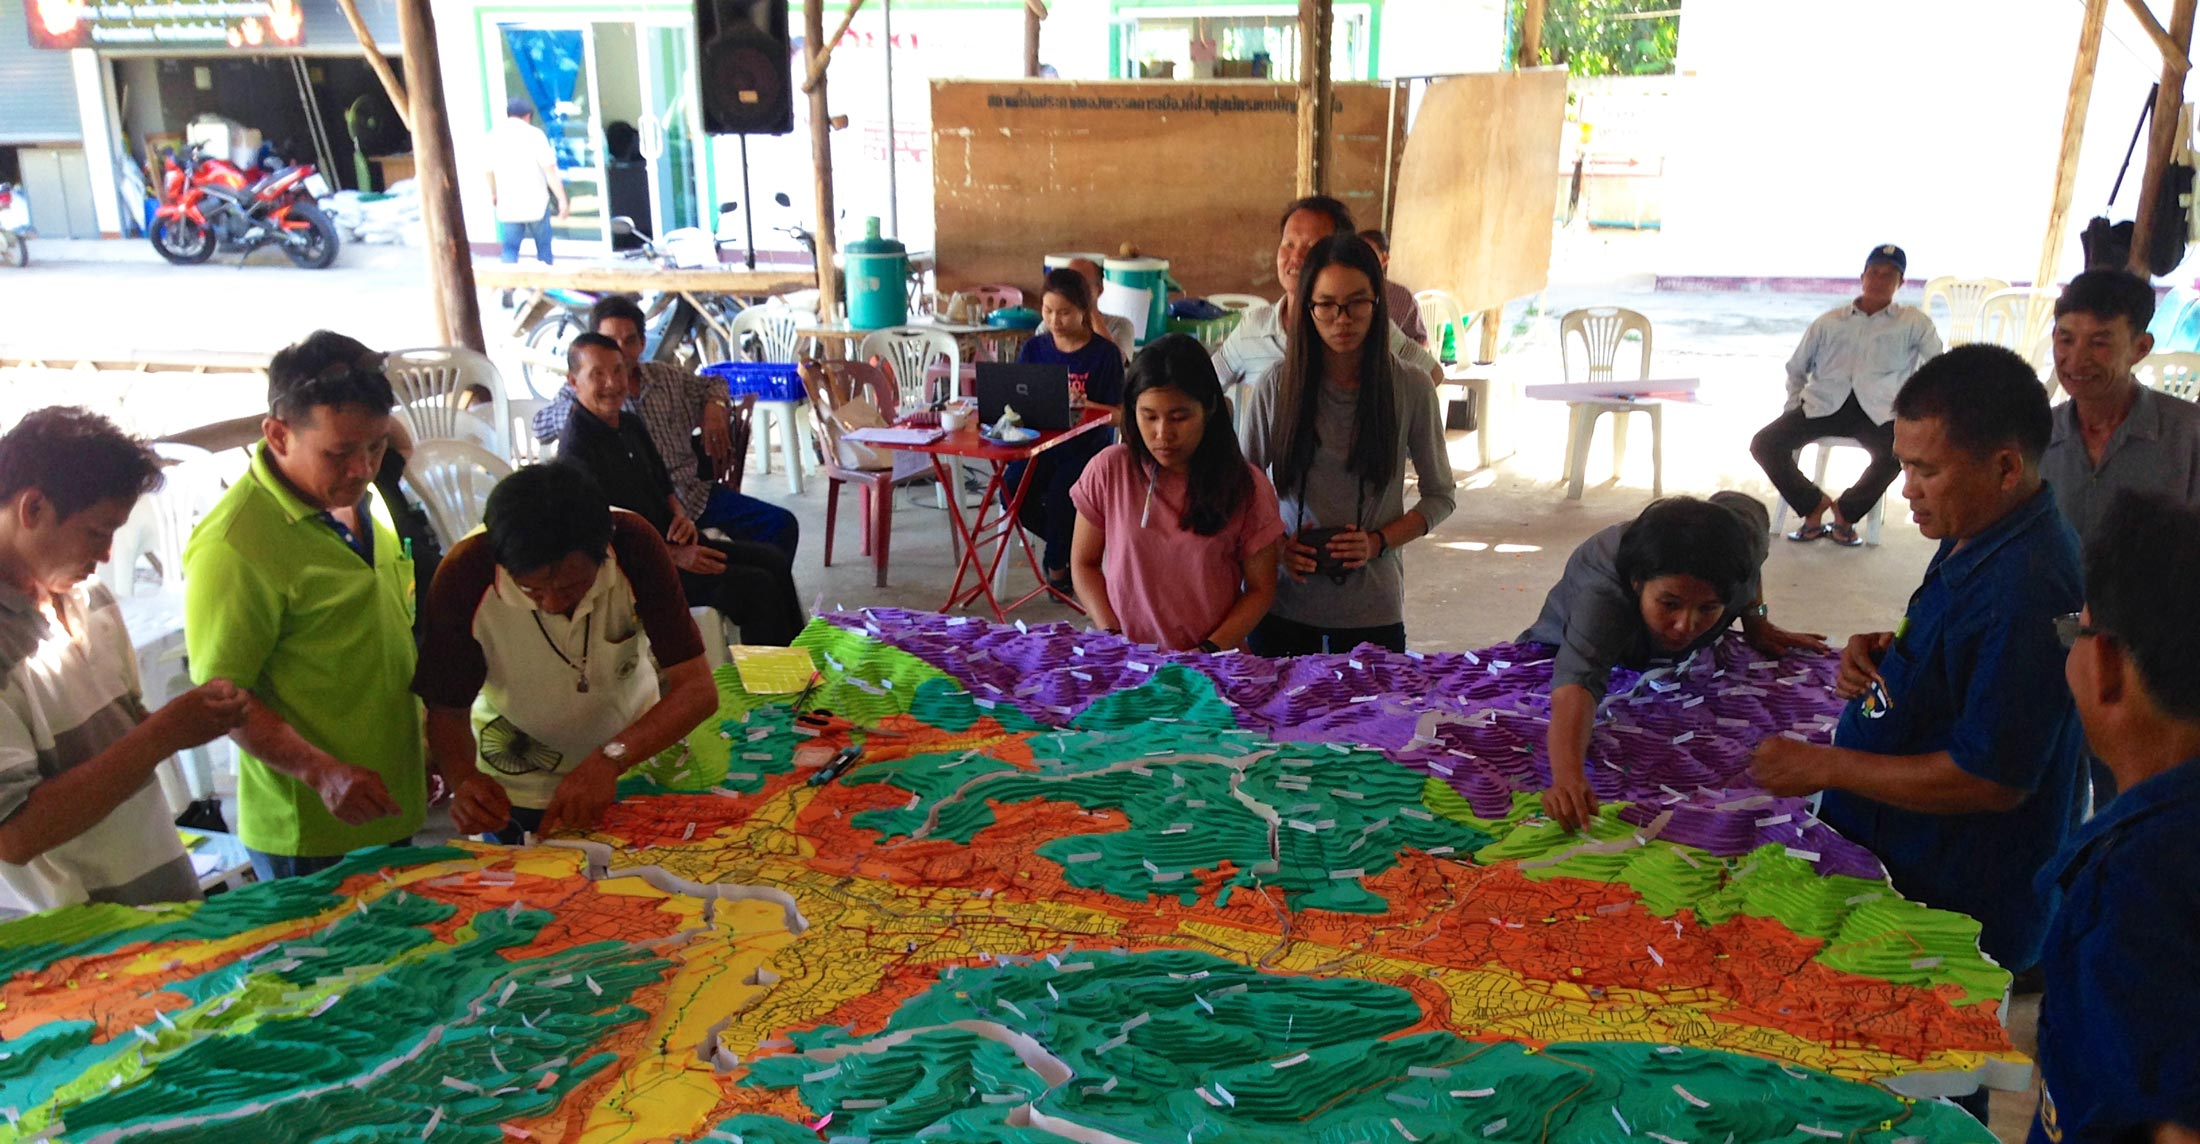 A community architects group, together with Mae-Tha subdistrict, show how protection of the national park forest can be performed simultaneously with management and preservation of agricultural practices.